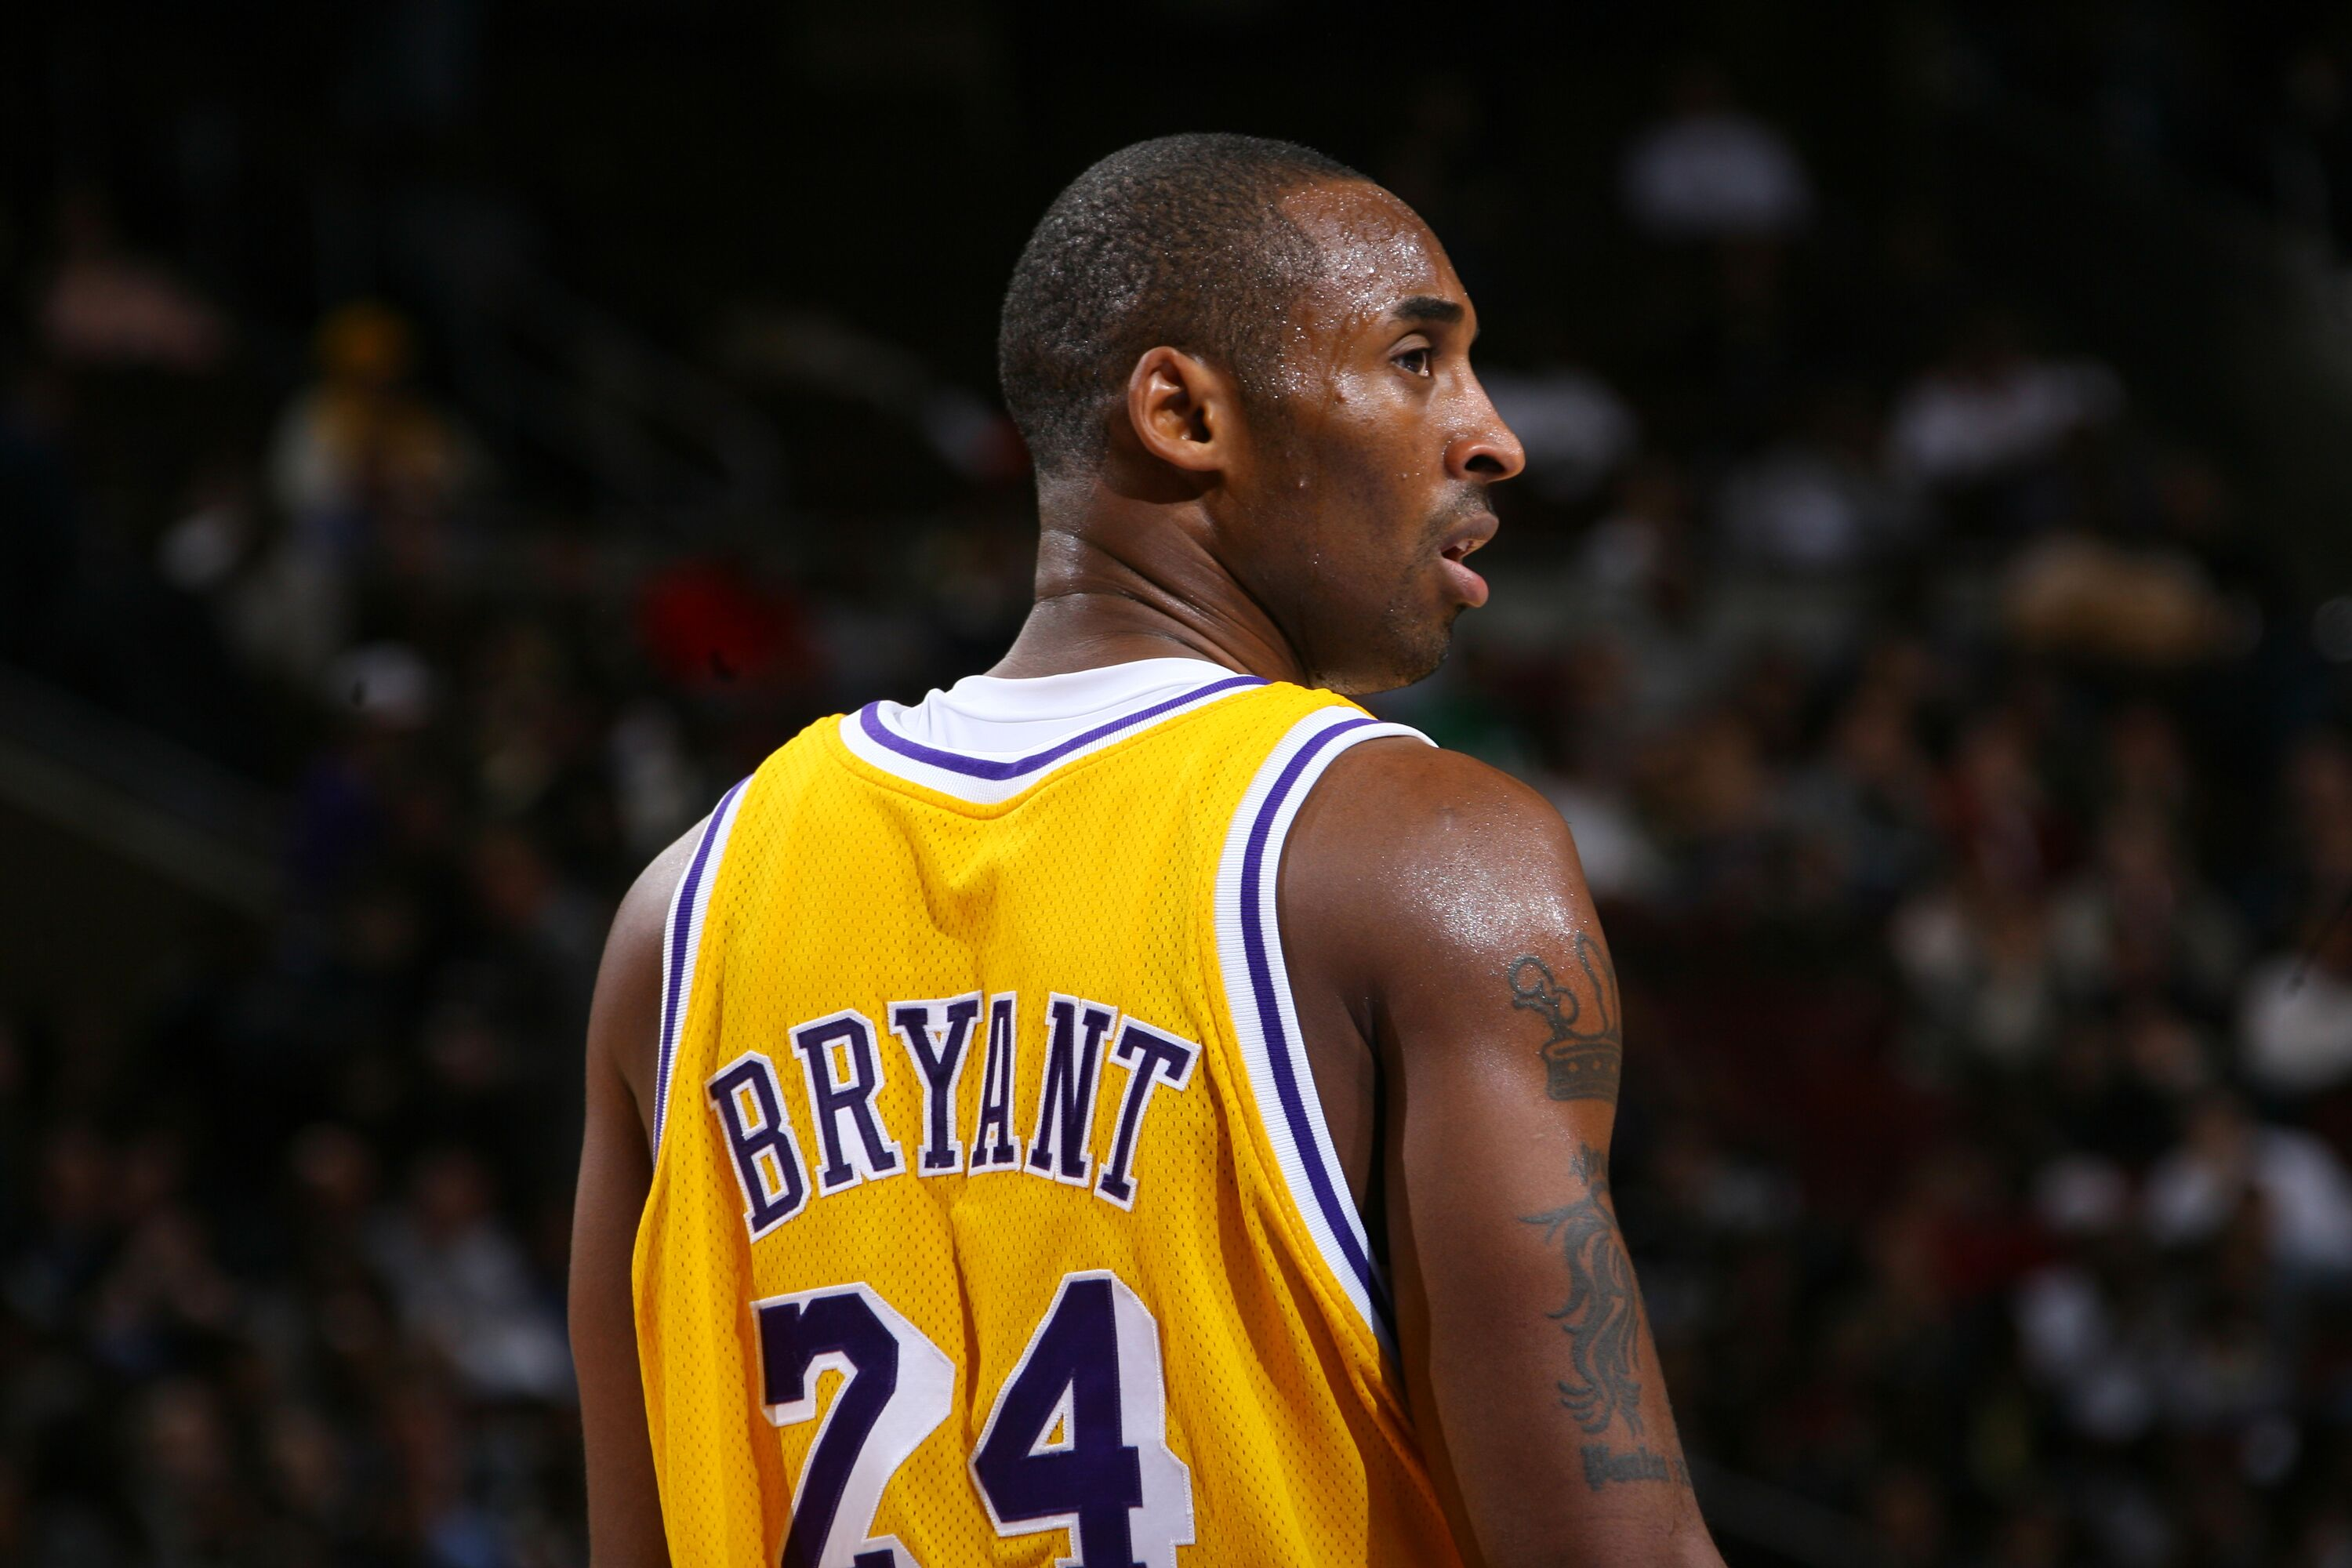 Kobe Bryant playing a game against the Philadelphia 76ers at the Wachovia Center on December 21, 2007, in Philadelphia, Pennsylvania   Photo: Getty Images